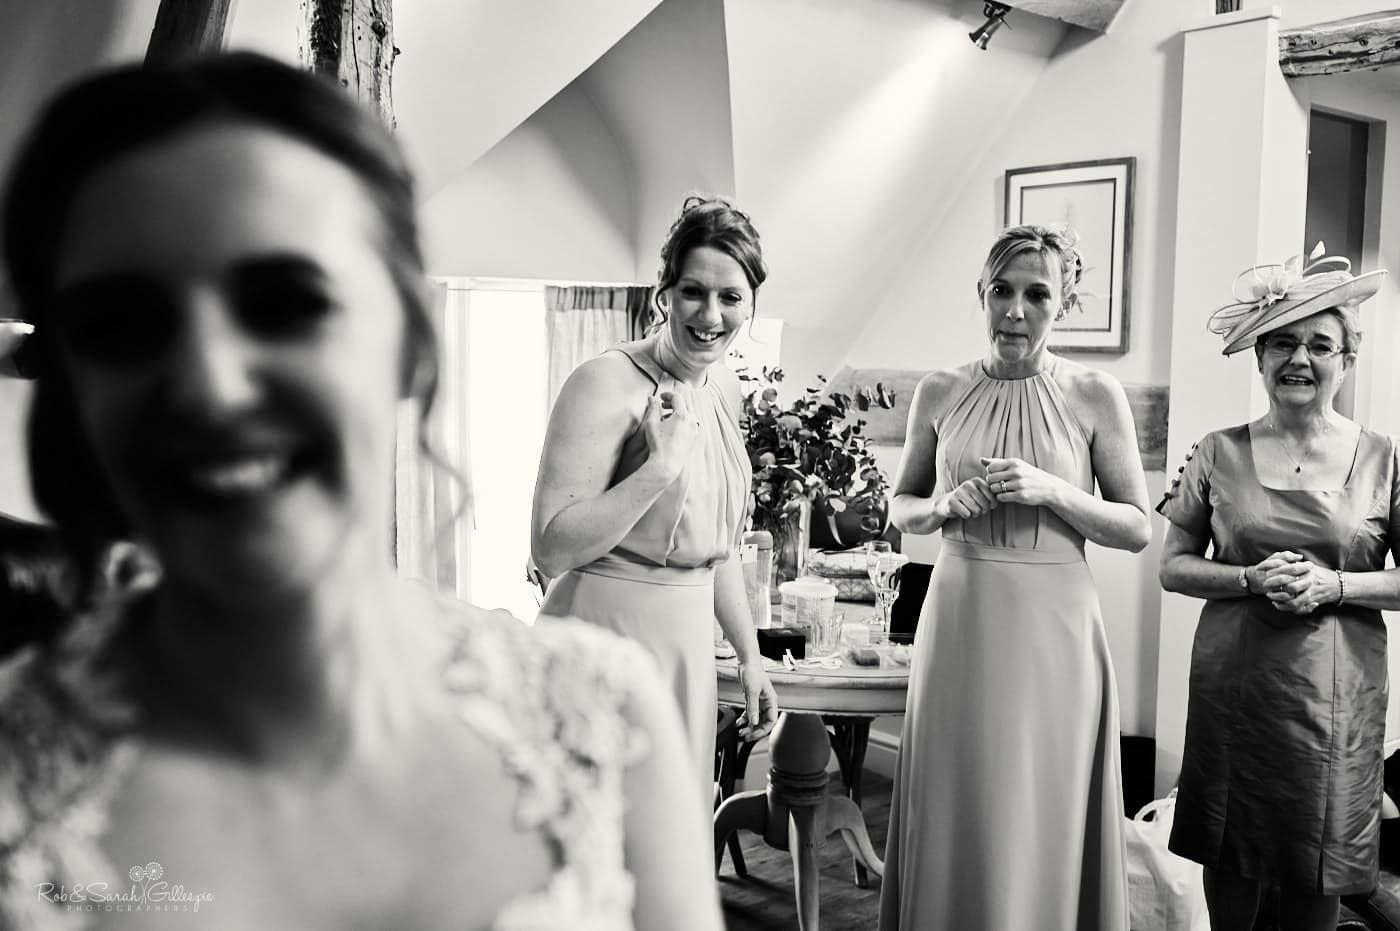 Bridesmaids watch as bride has wedding dress fastened